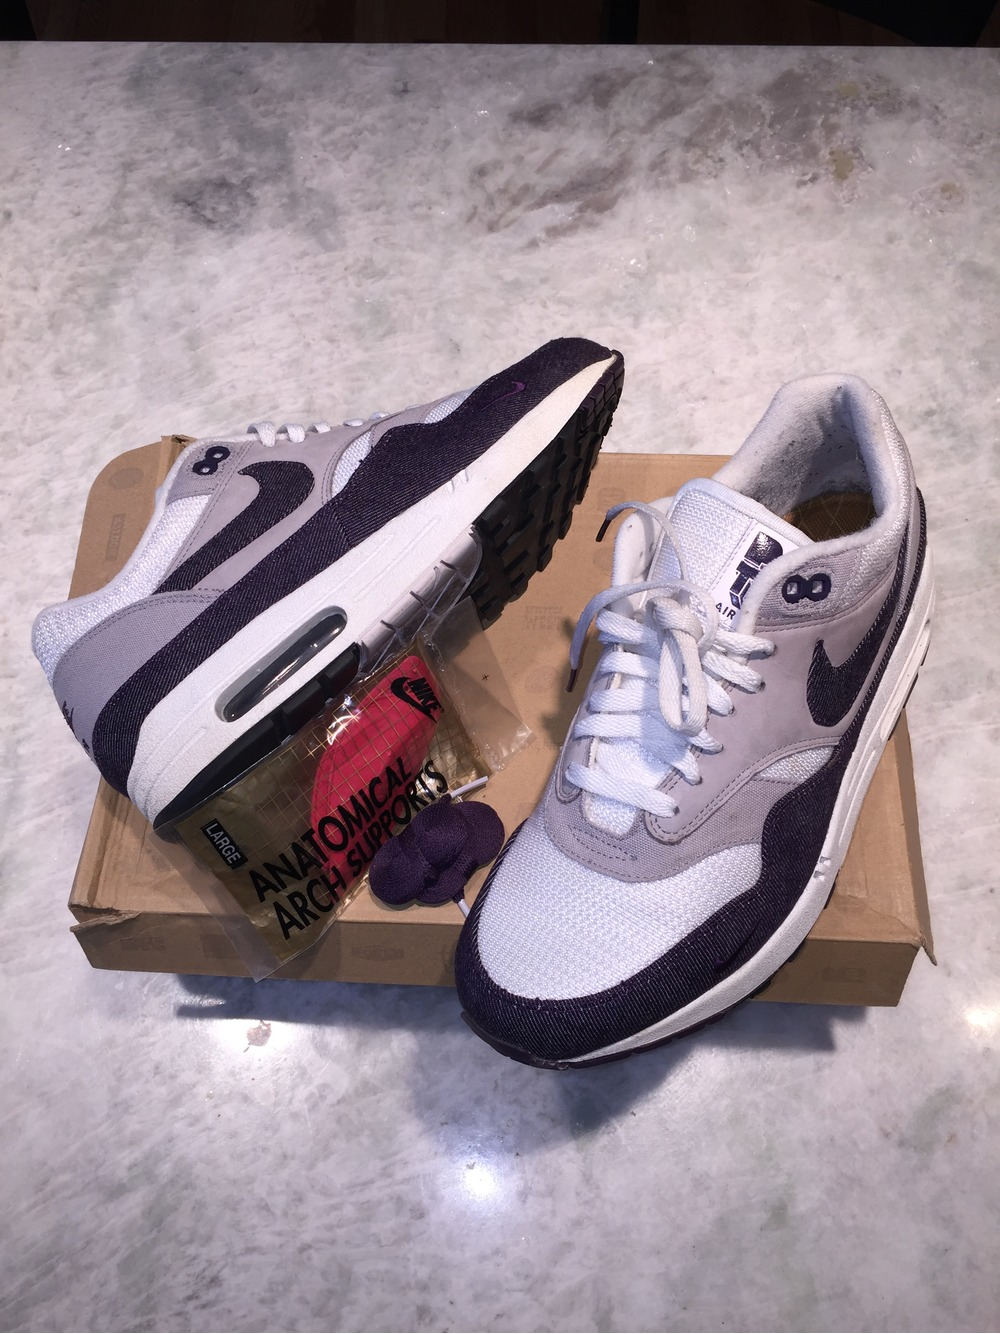 9e4586208f ... Nike Air Max 1 Patta Purple Denim US 9.5 UK 8.5 Parra Amsterdam  Chlorophyll Corduroy Supreme ...